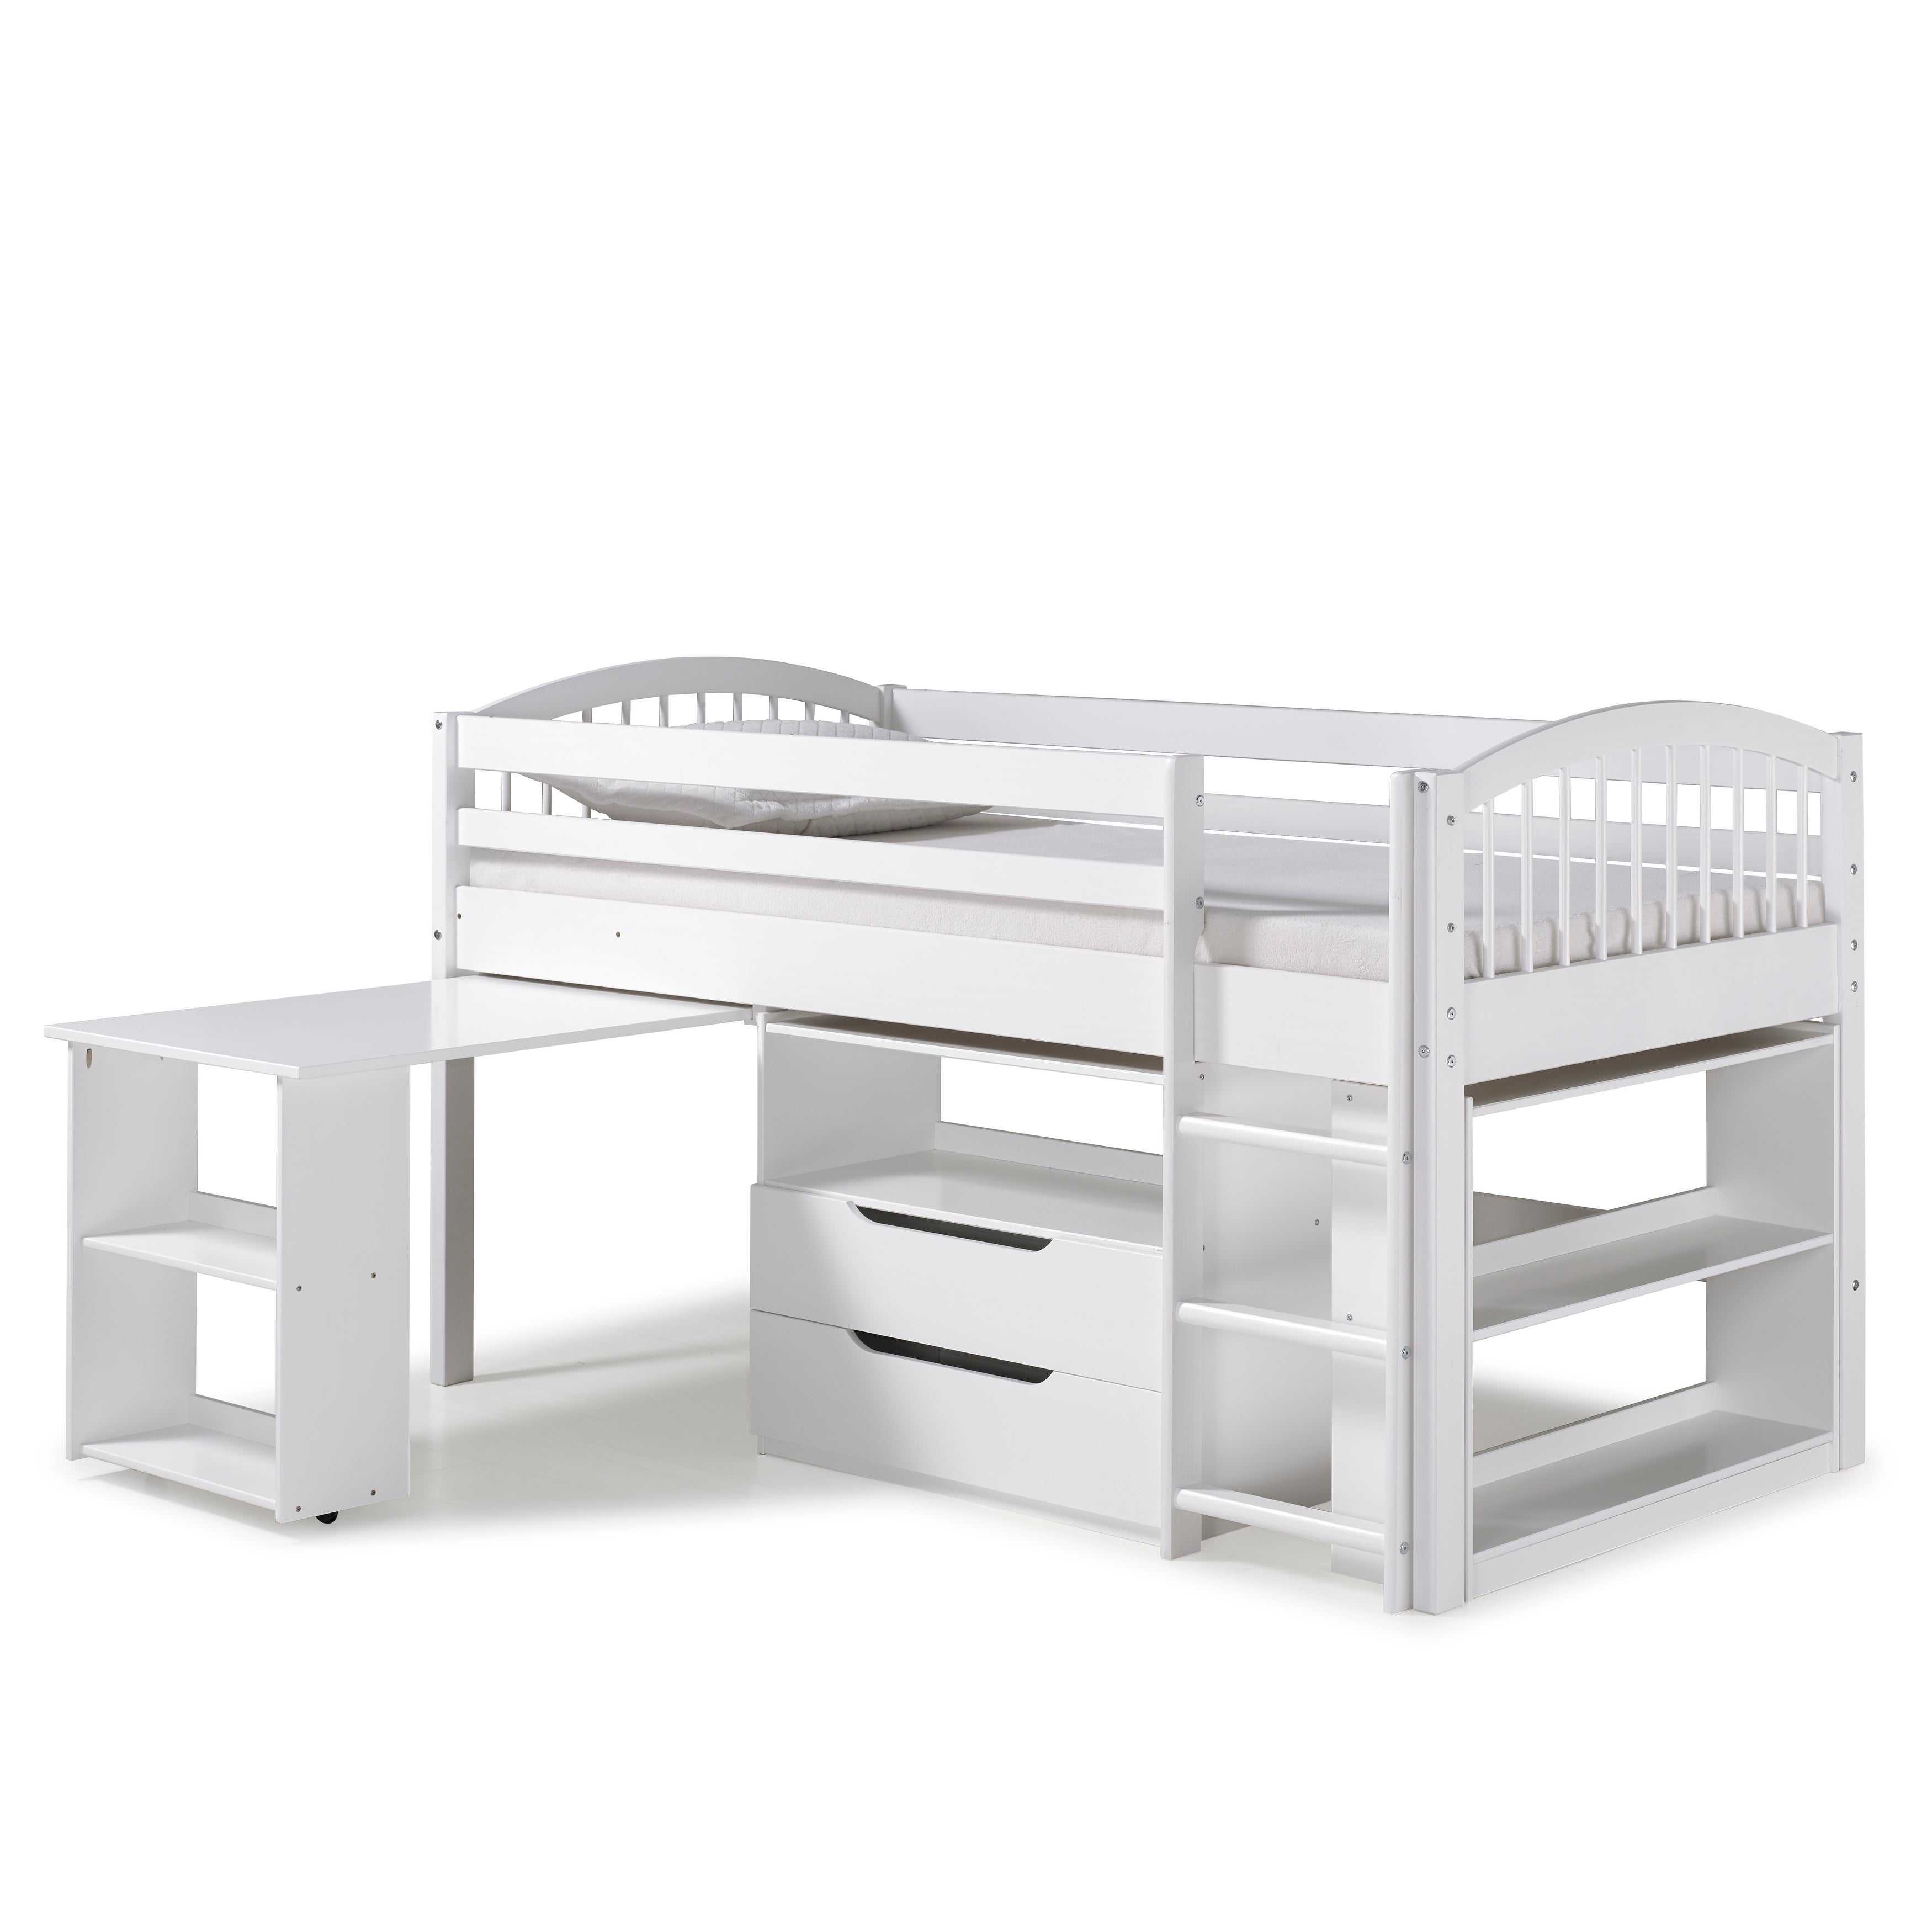 Shop Addison Junior Low Loft Bed With Storage Drawers Desk And